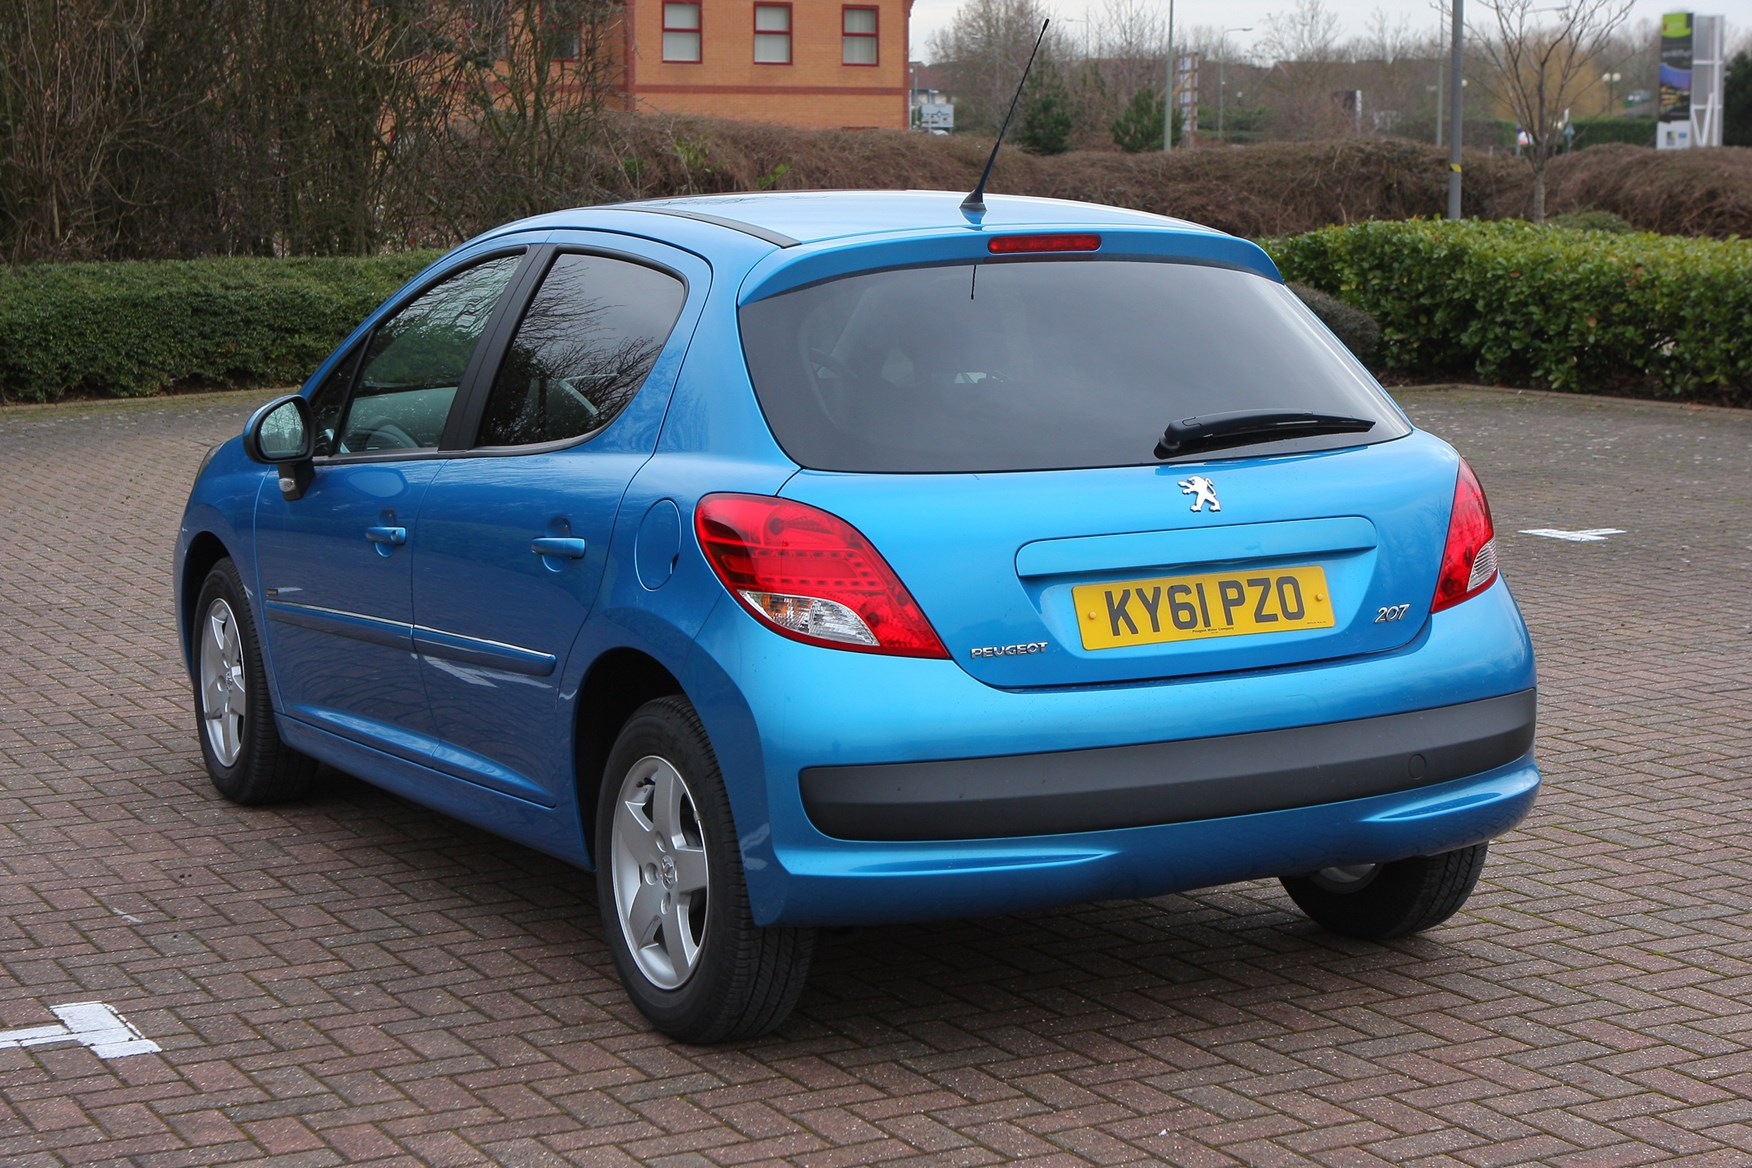 peugeot 207 hatchback review 2006 2012 parkers. Black Bedroom Furniture Sets. Home Design Ideas